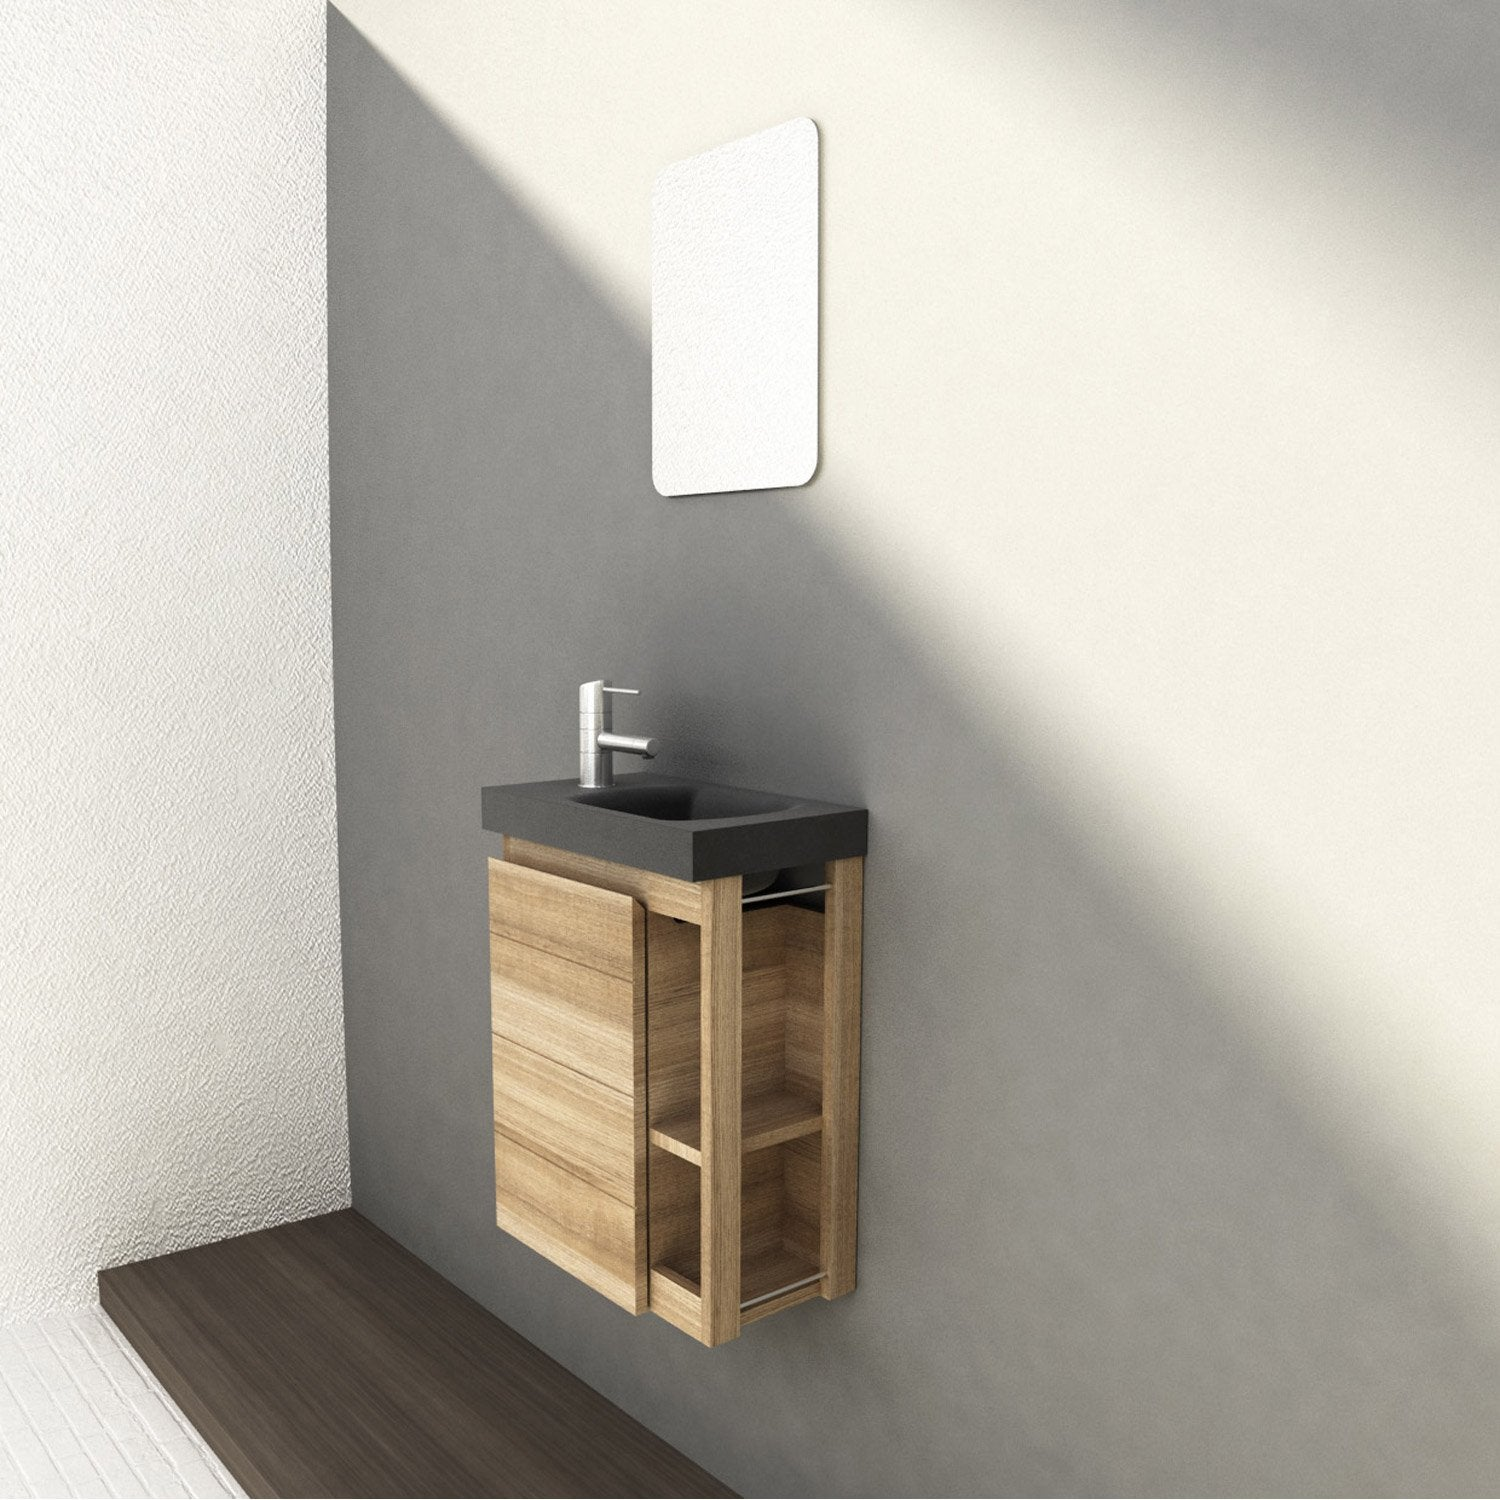 Meuble lave mains avec miroir fairway leroy merlin for Meuble de wc leroy merlin